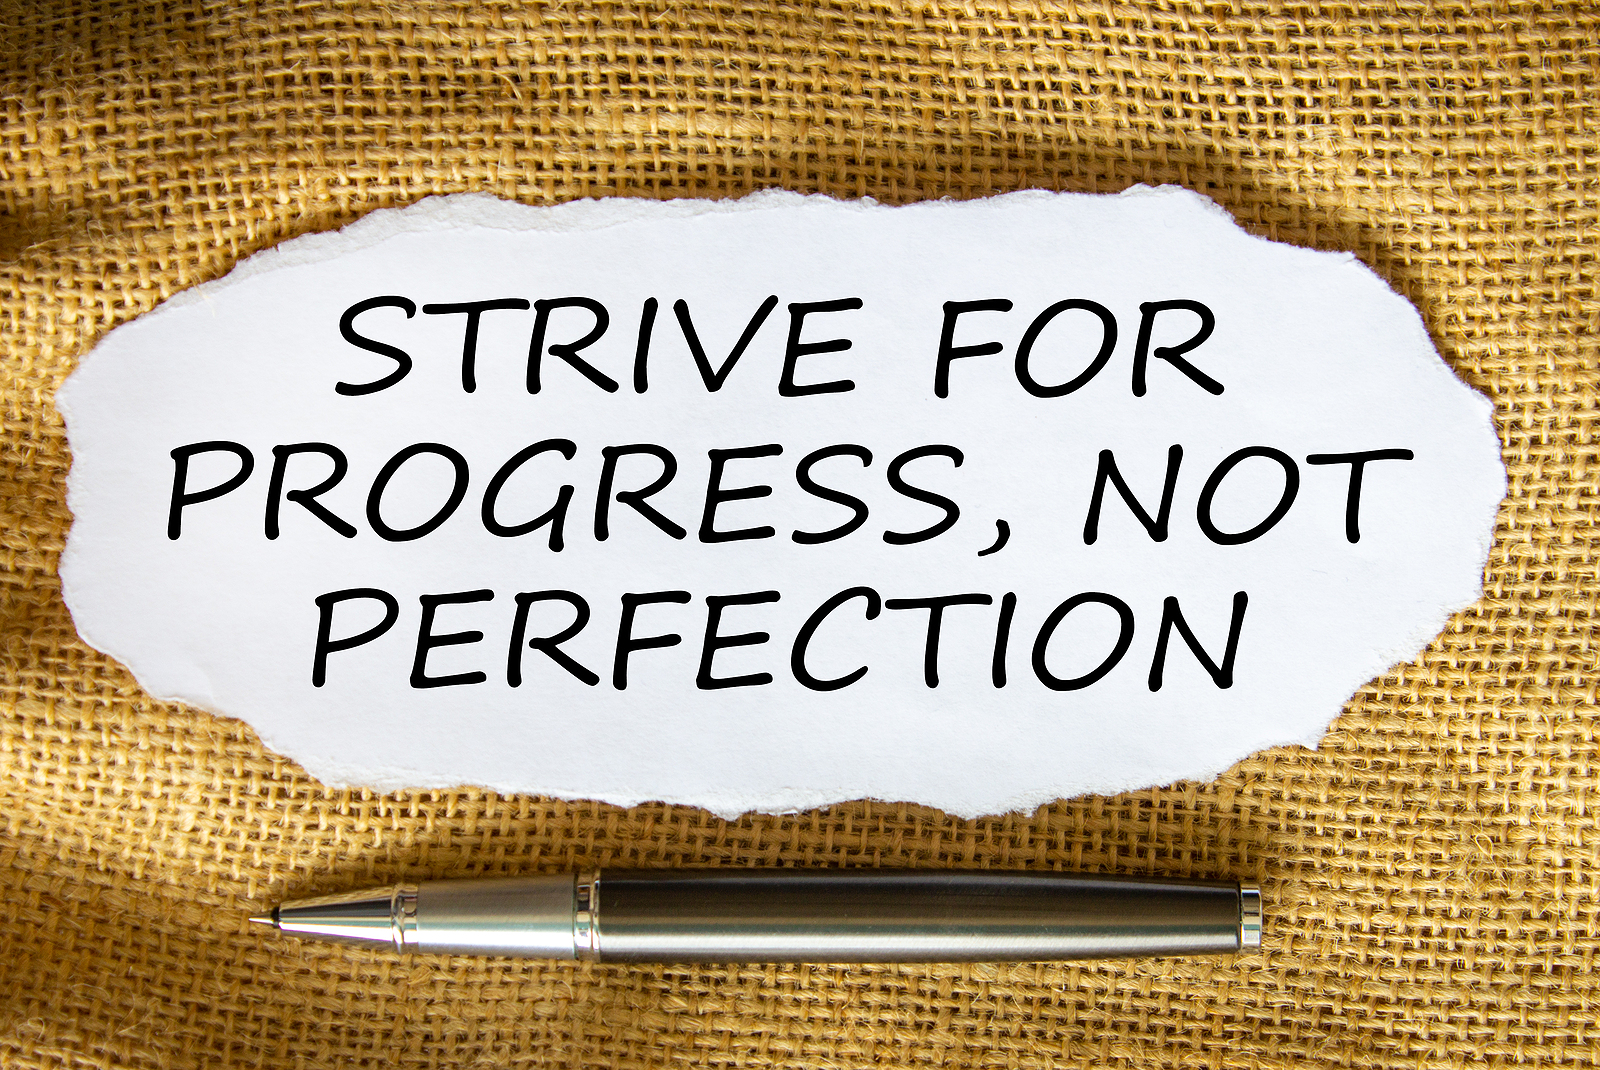 """Quote saying """" strive for progress, not perfection. Its time to give yourself grace. Learn tips for overcoming perfectionism in Detroit, MI. We offer therapy for anxiety and perfectionism. Call now and begin moving forward!"""